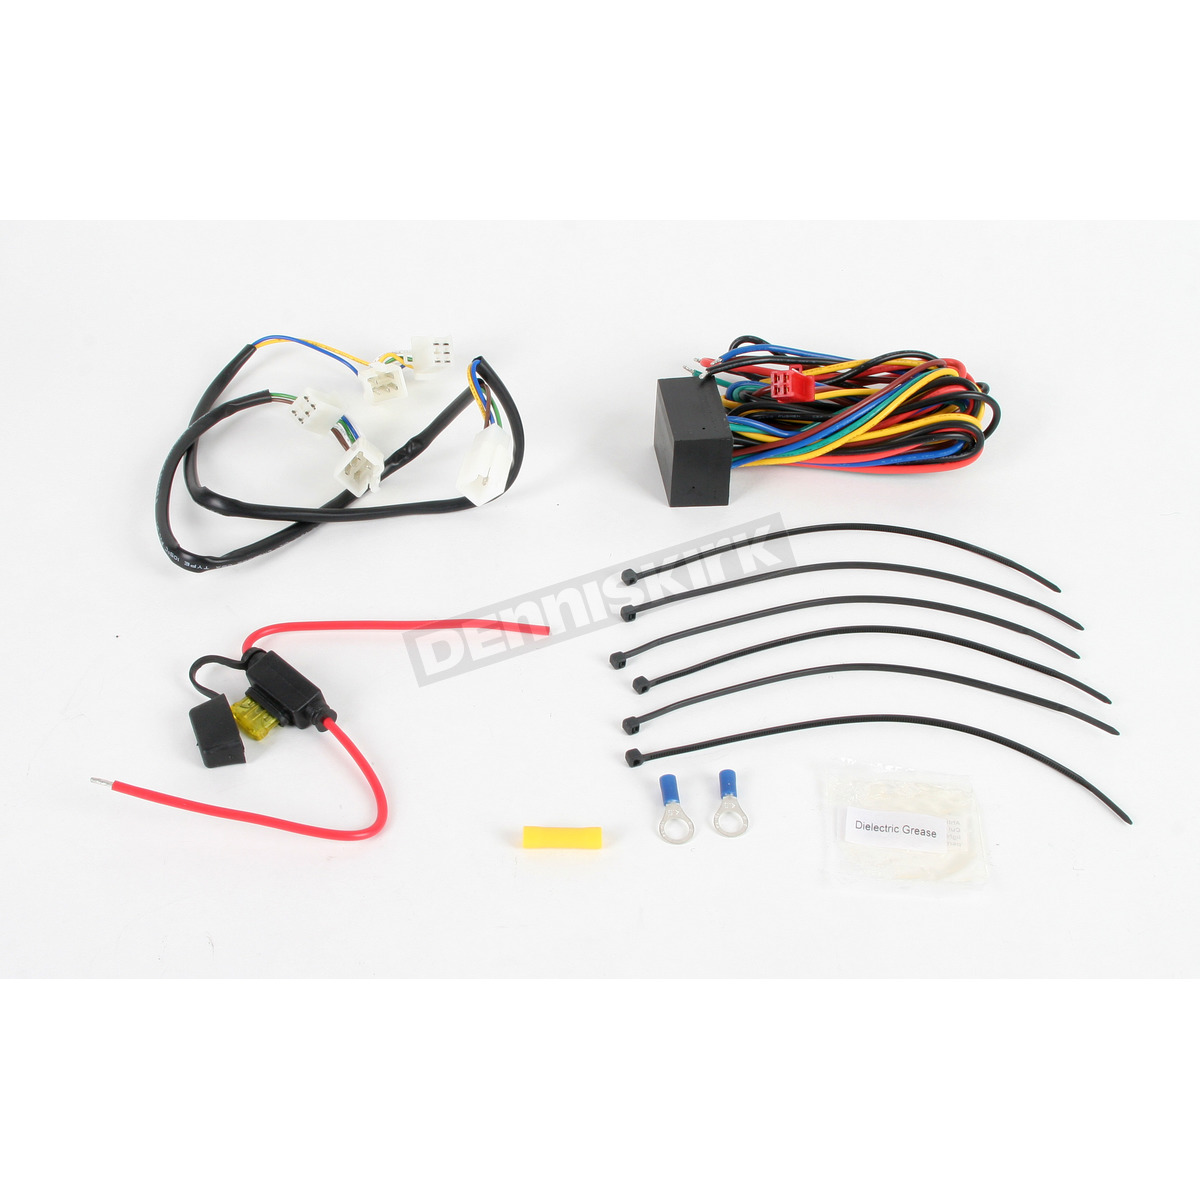 Gl1500 Trailer Wiring Harness : Kuryakyn plug play wiring harness and relay for gl